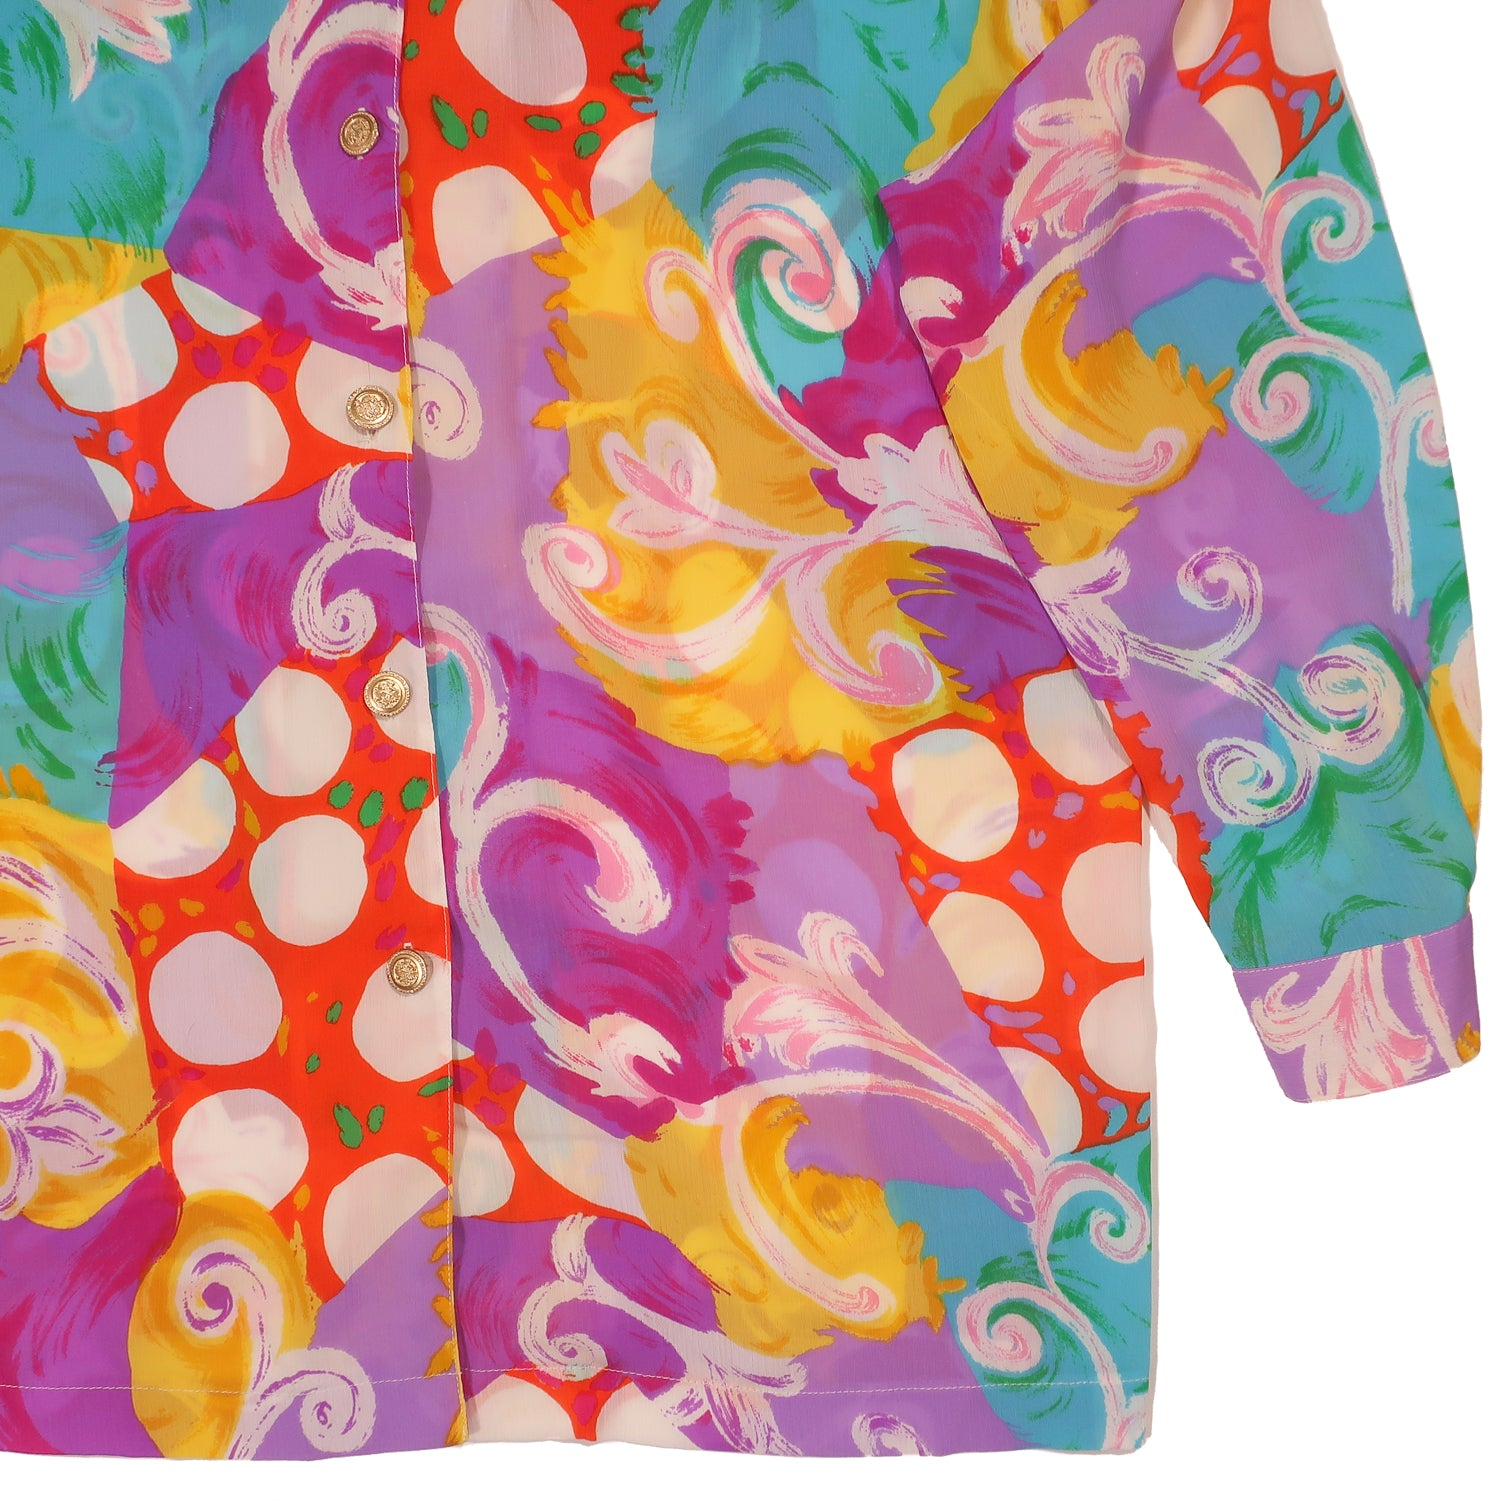 Second Room Vintage Clothing. Vintage patterned, bright orange, green, yellow, purple and white long sleeve button up, with unique notched collar design. Free Shipping on all orders within North America.